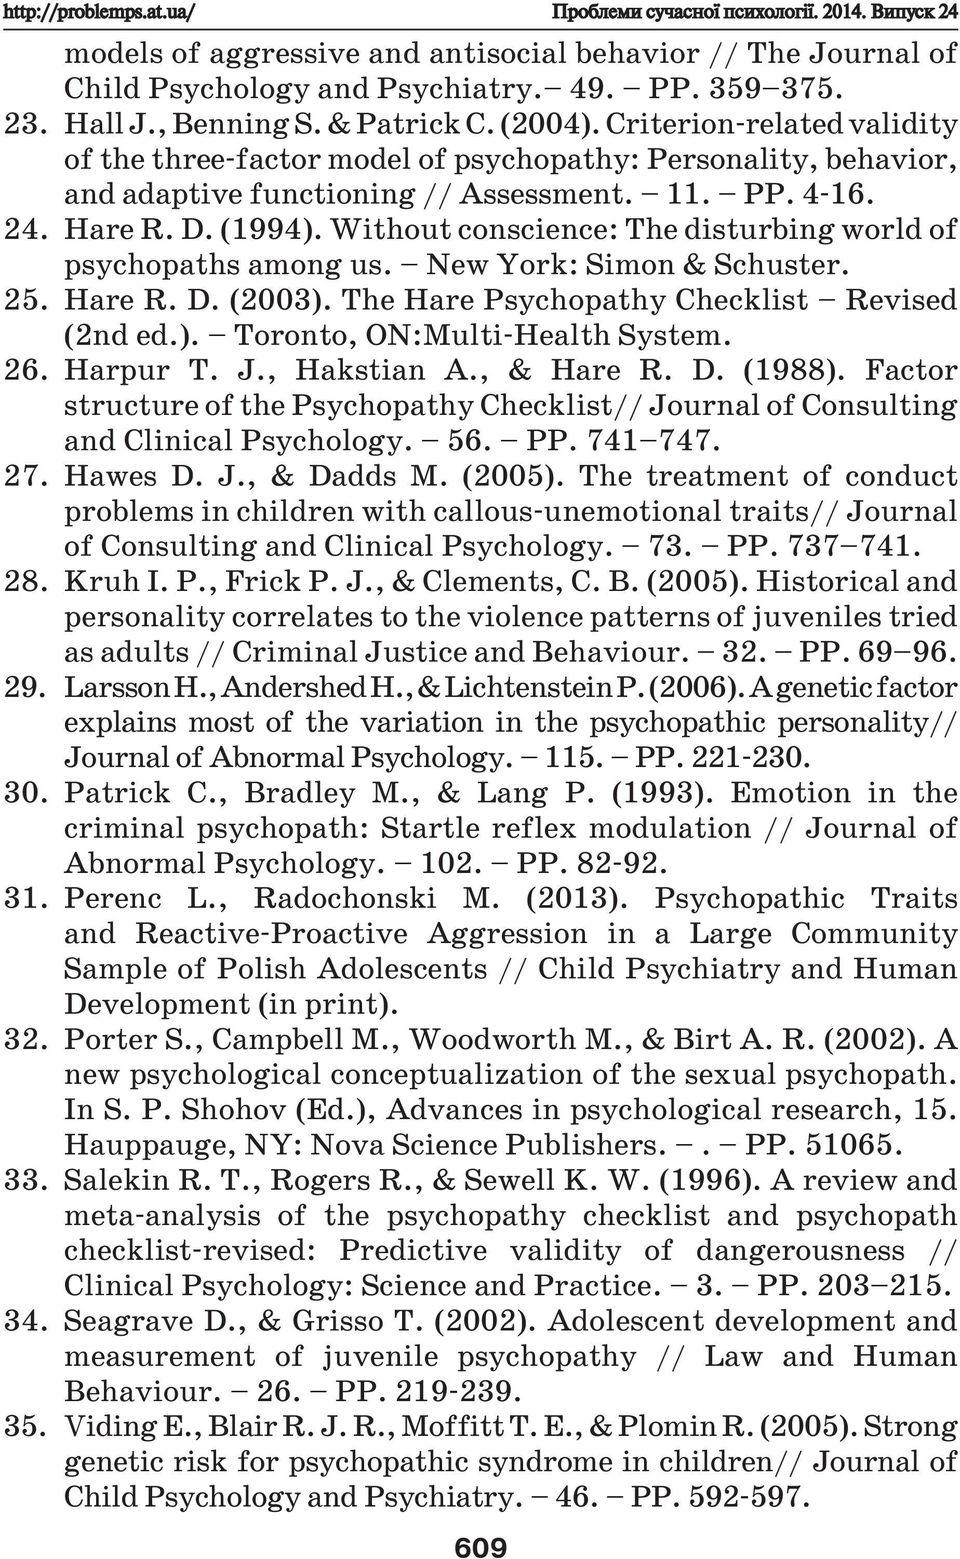 (1994). Without conscience: The disturbing world of psychopaths among us. New York: Simon & Schuster. 25. Hare R. D. (2003). The Hare Psychopathy Checklist Revised (2nd ed.). Toronto, ON:Multi-Health System.